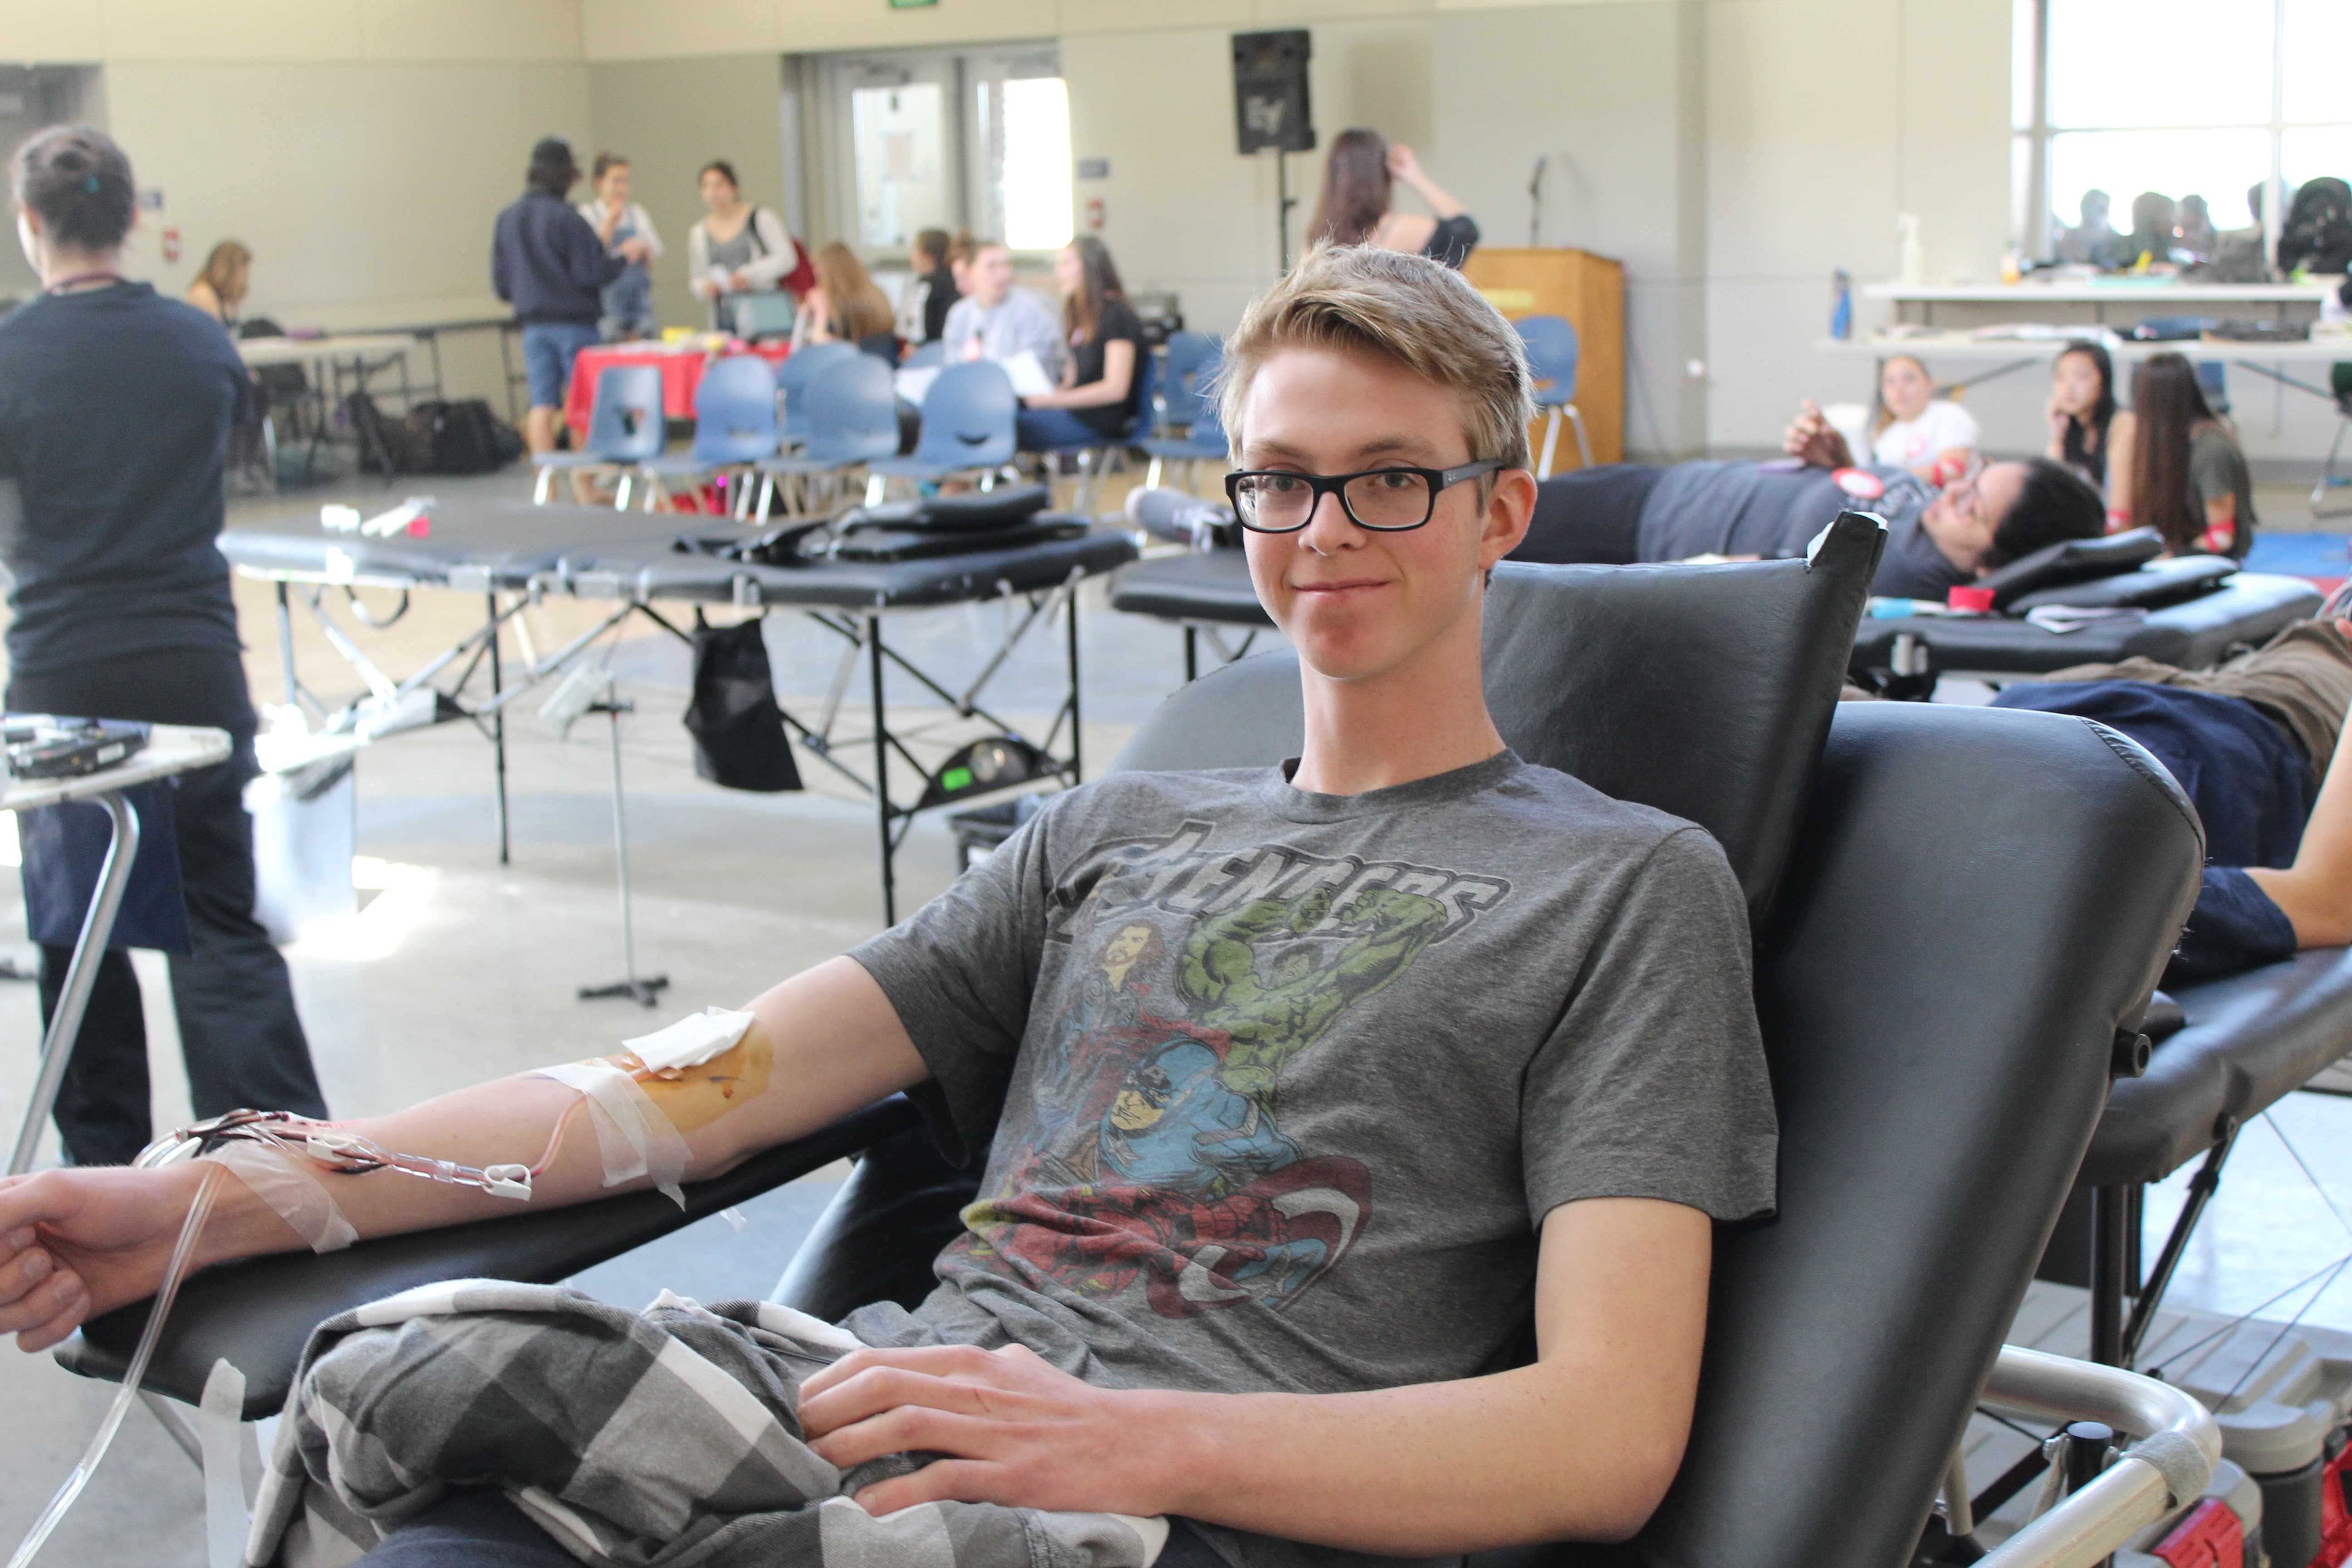 Chase Nilsen, a senior, donates blood during lunch on March 9 during the recent blood drive.